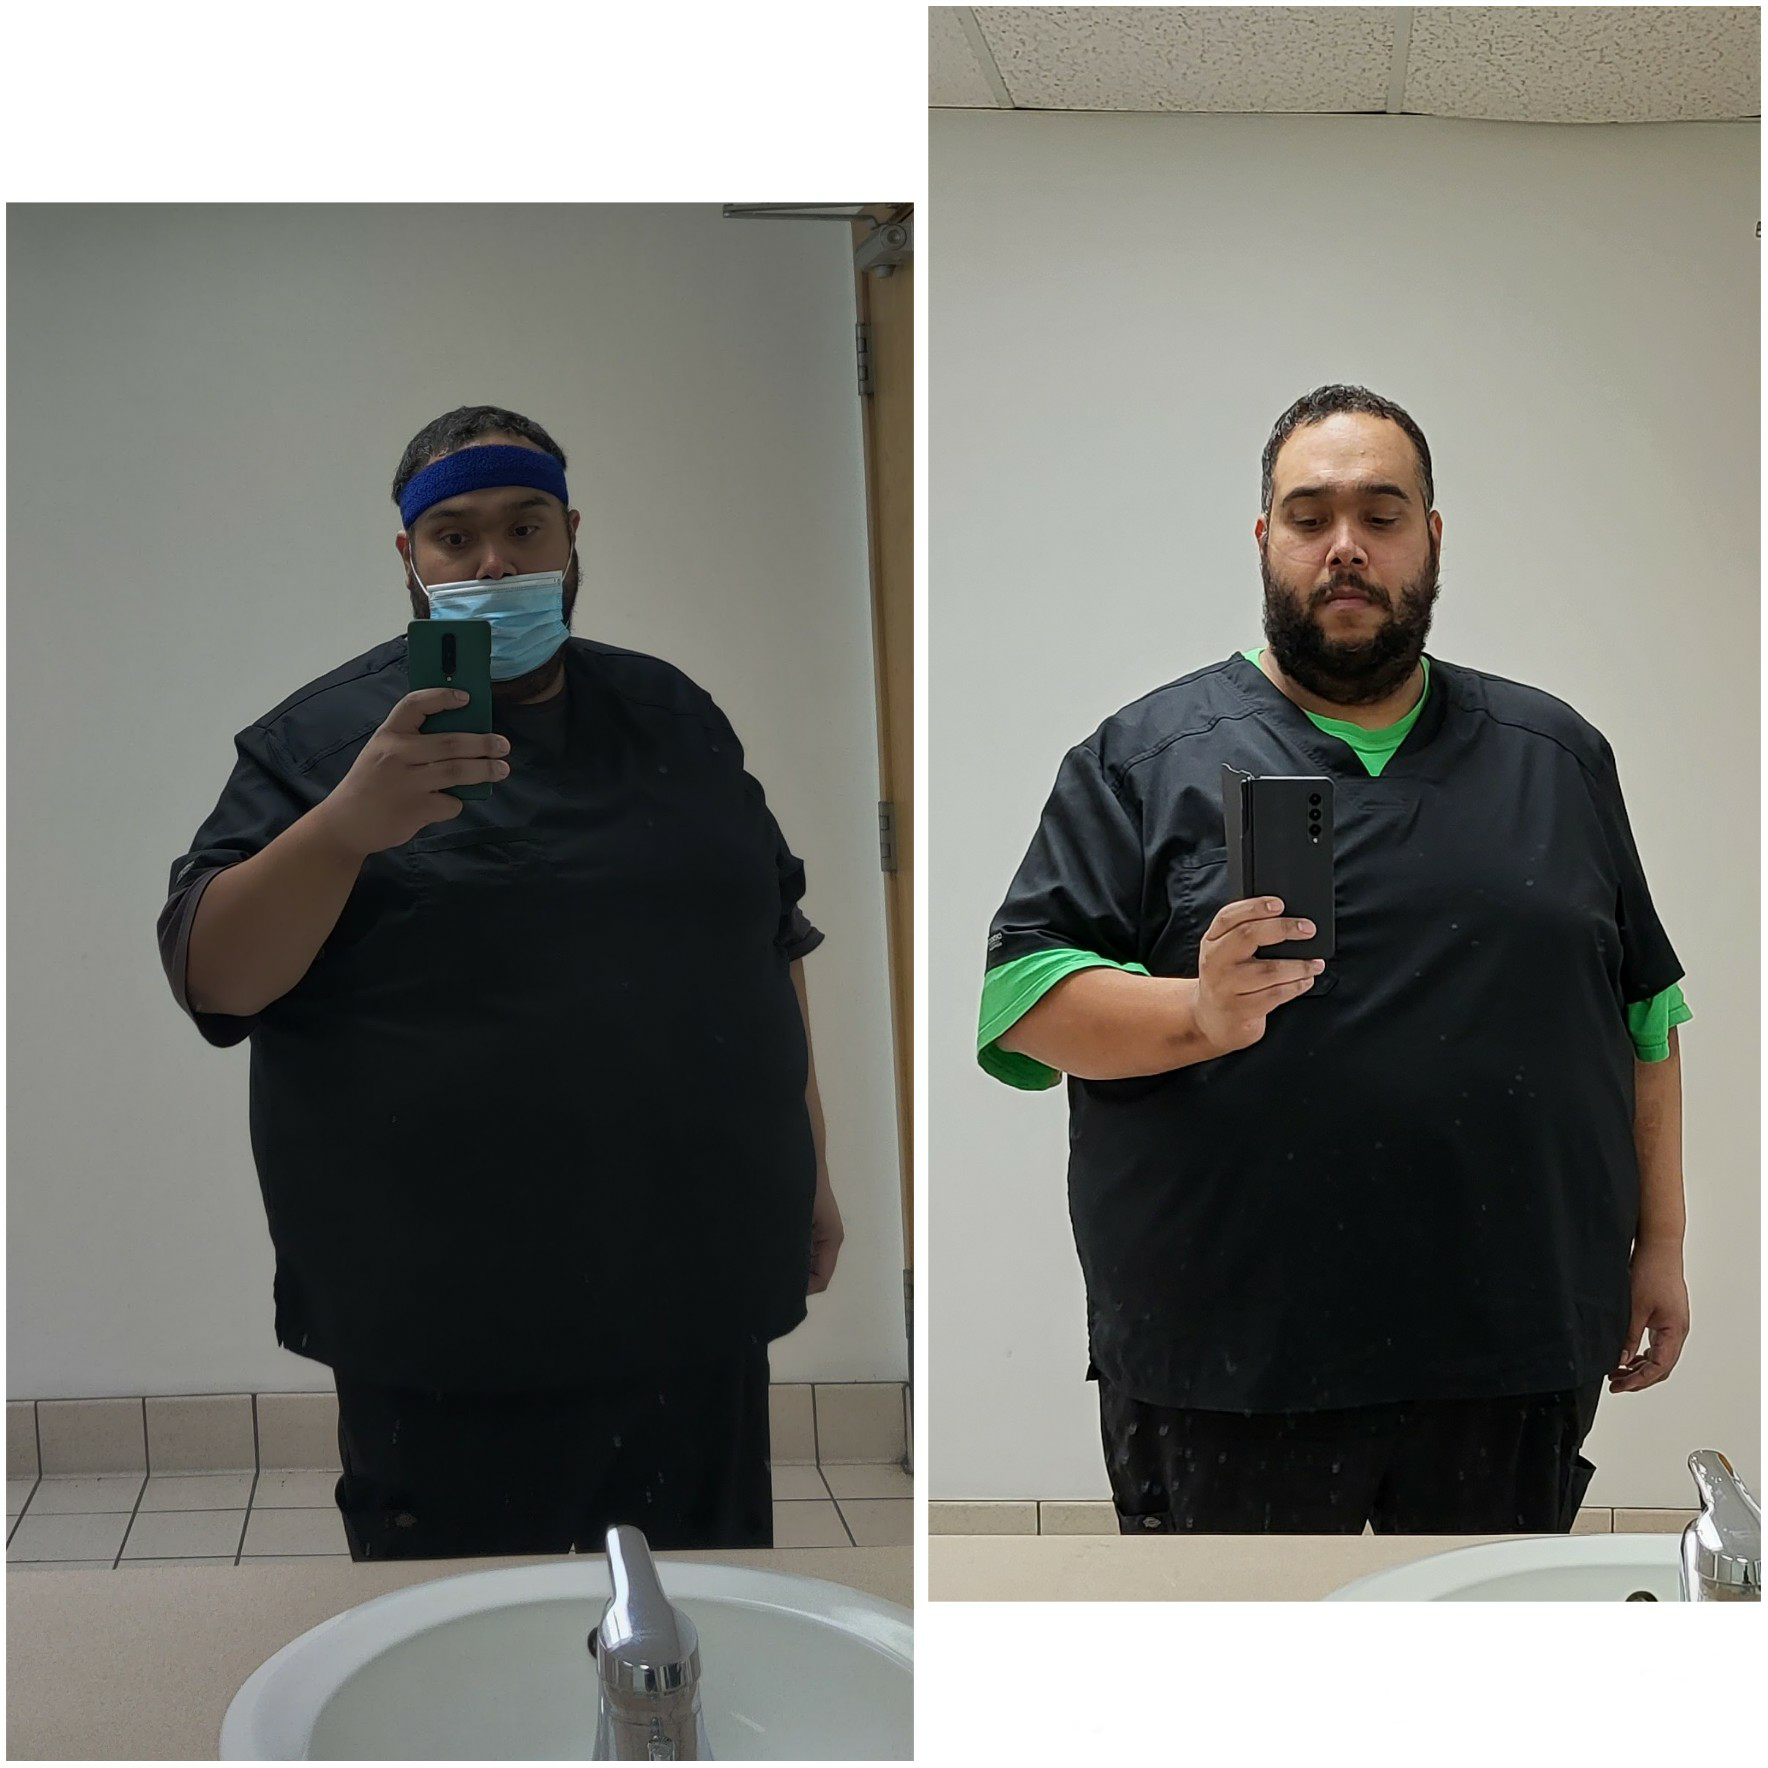 55 lbs Weight Loss Before and After 5 foot 10 Male 420 lbs to 365 lbs